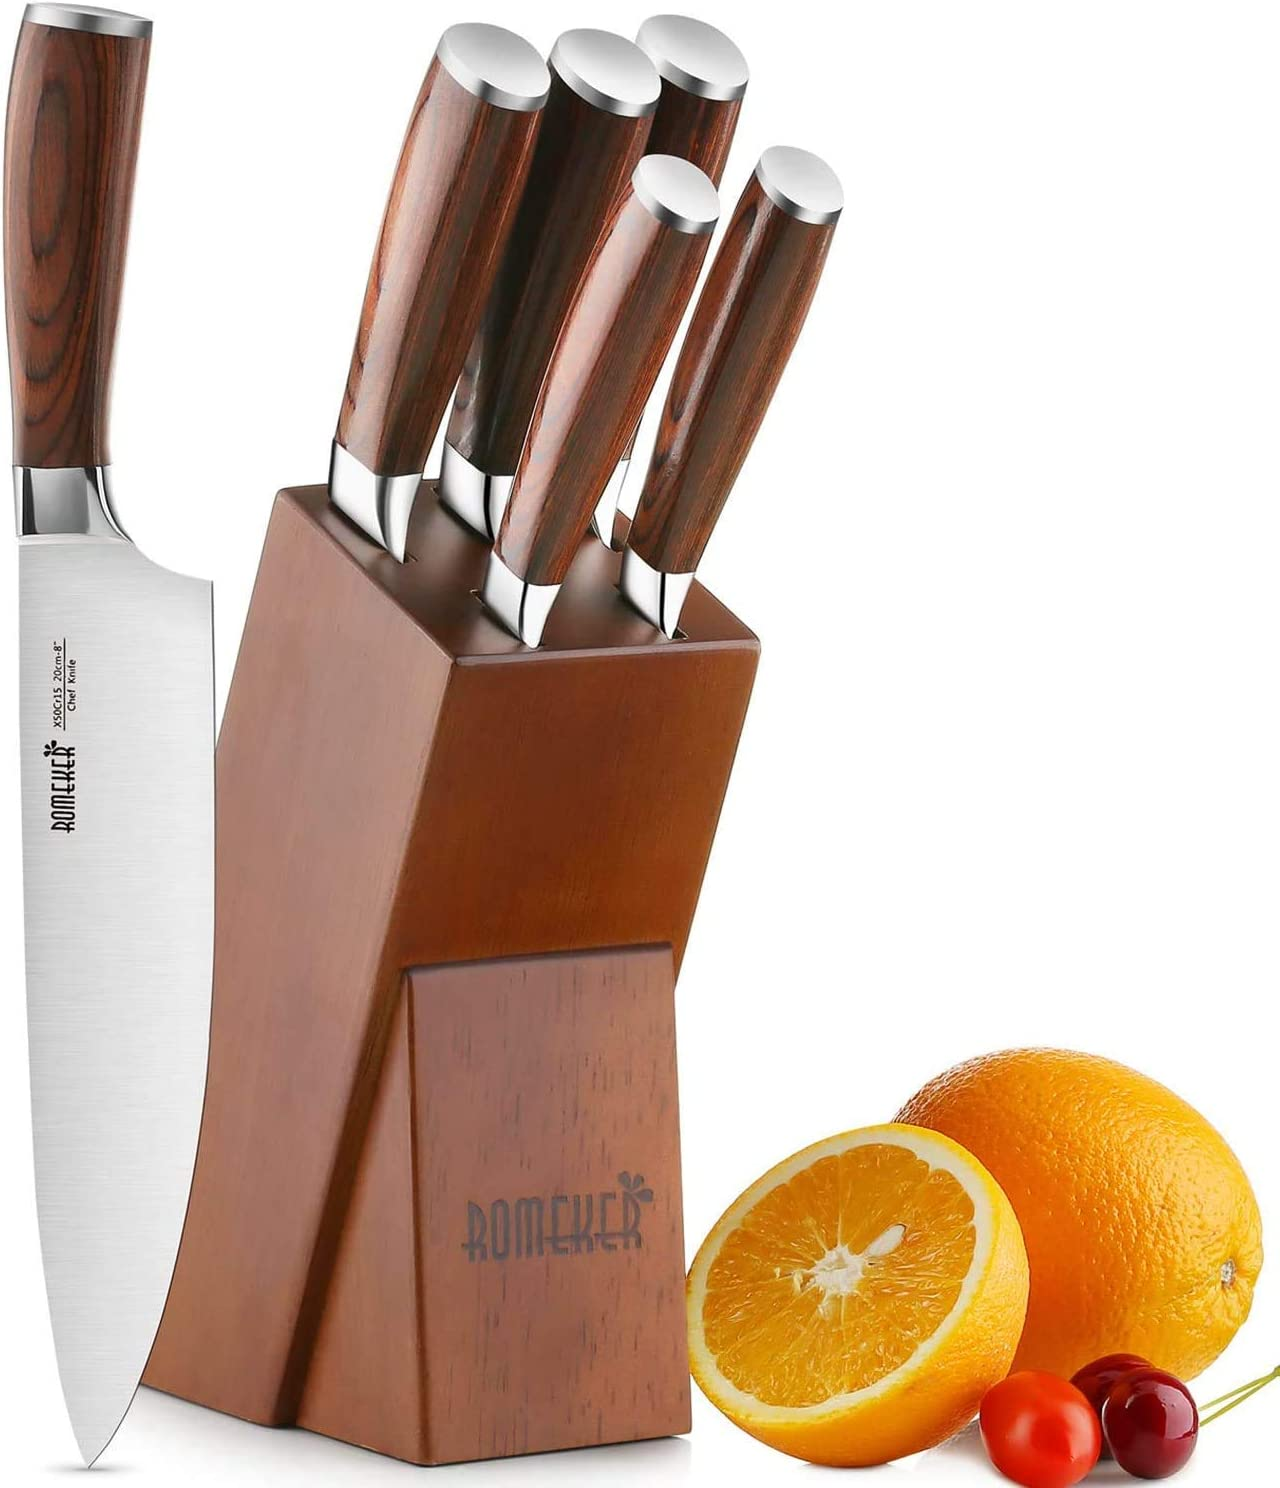 Knife Set,6-Piece Kitchen Knife Set with Wooden Block Germany High Carbon Stainless Steel Knife Block Set,Chef Knife Set Boxed Knife Set by ROMEKER